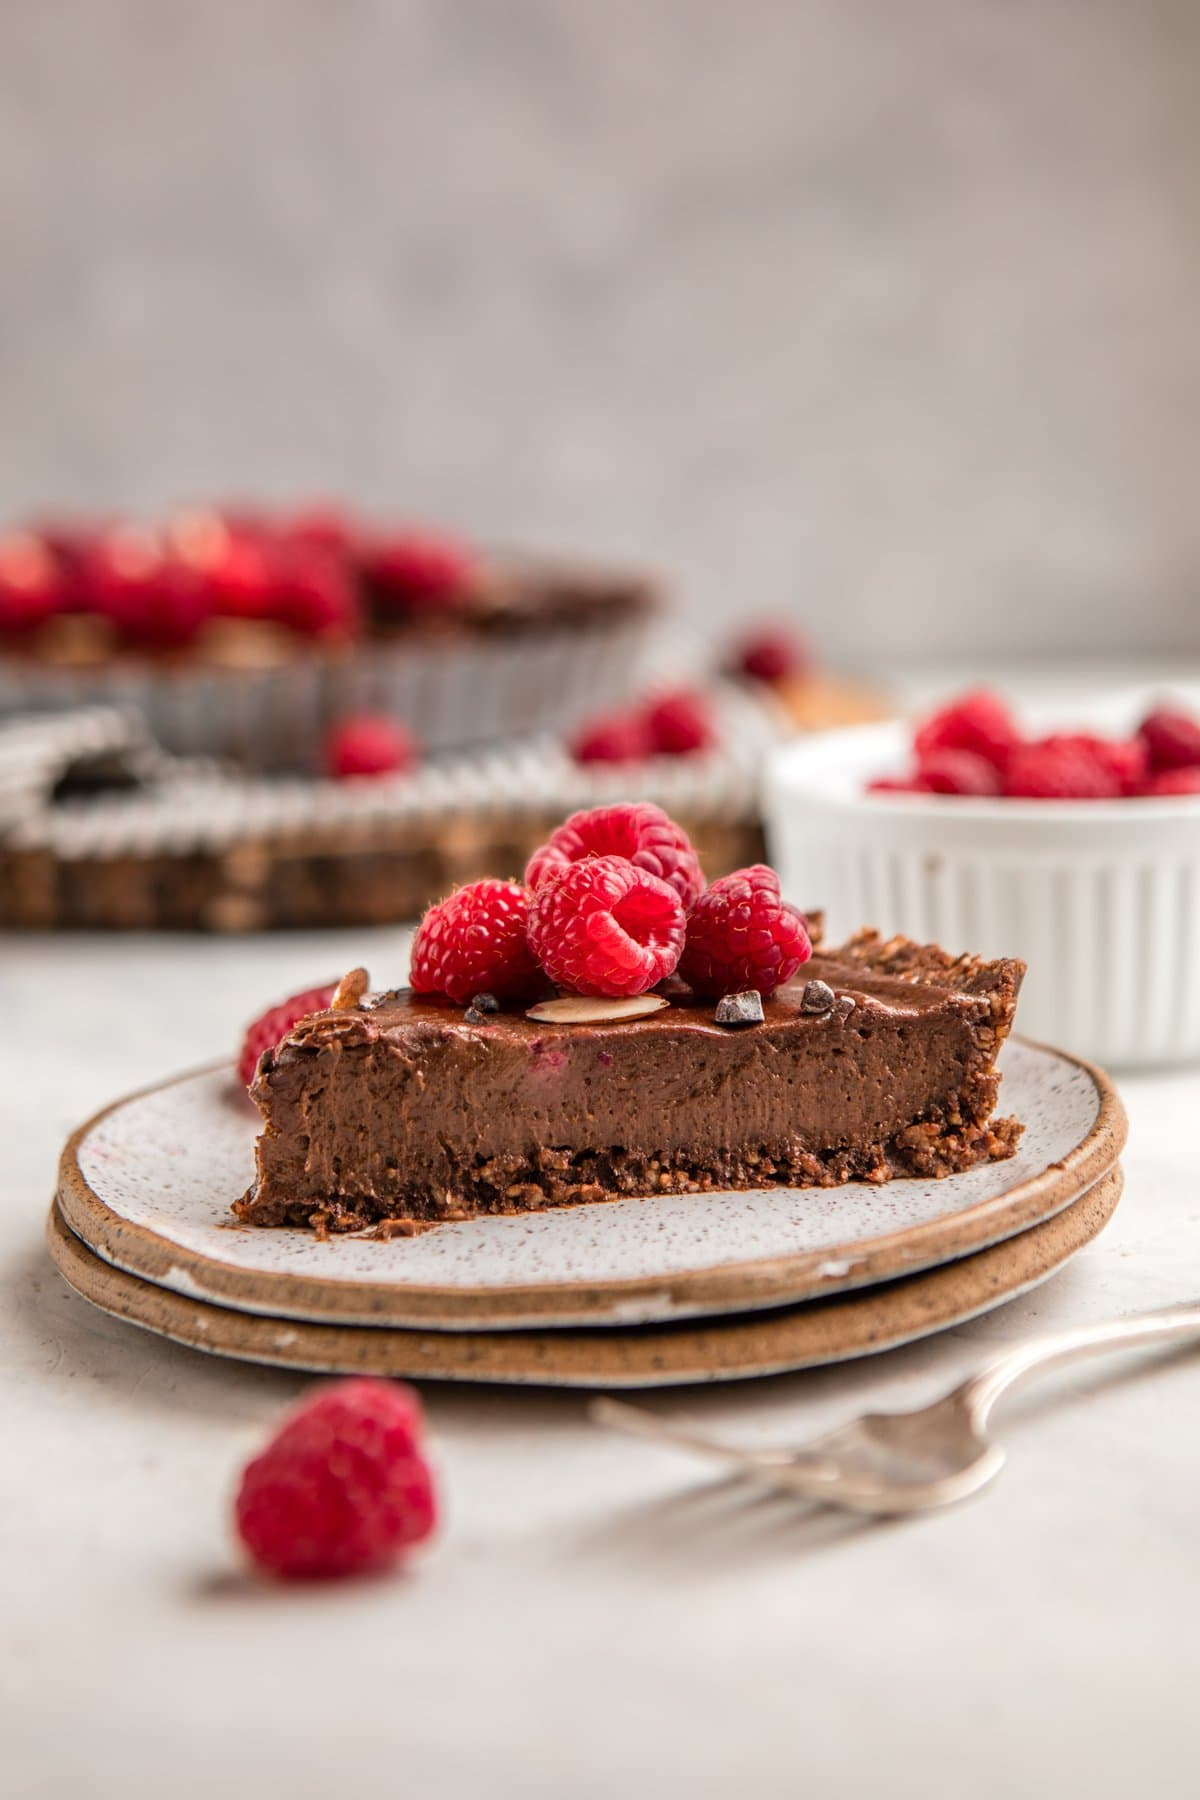 slice of no bake chocolate raspberry tart on white speckled plate